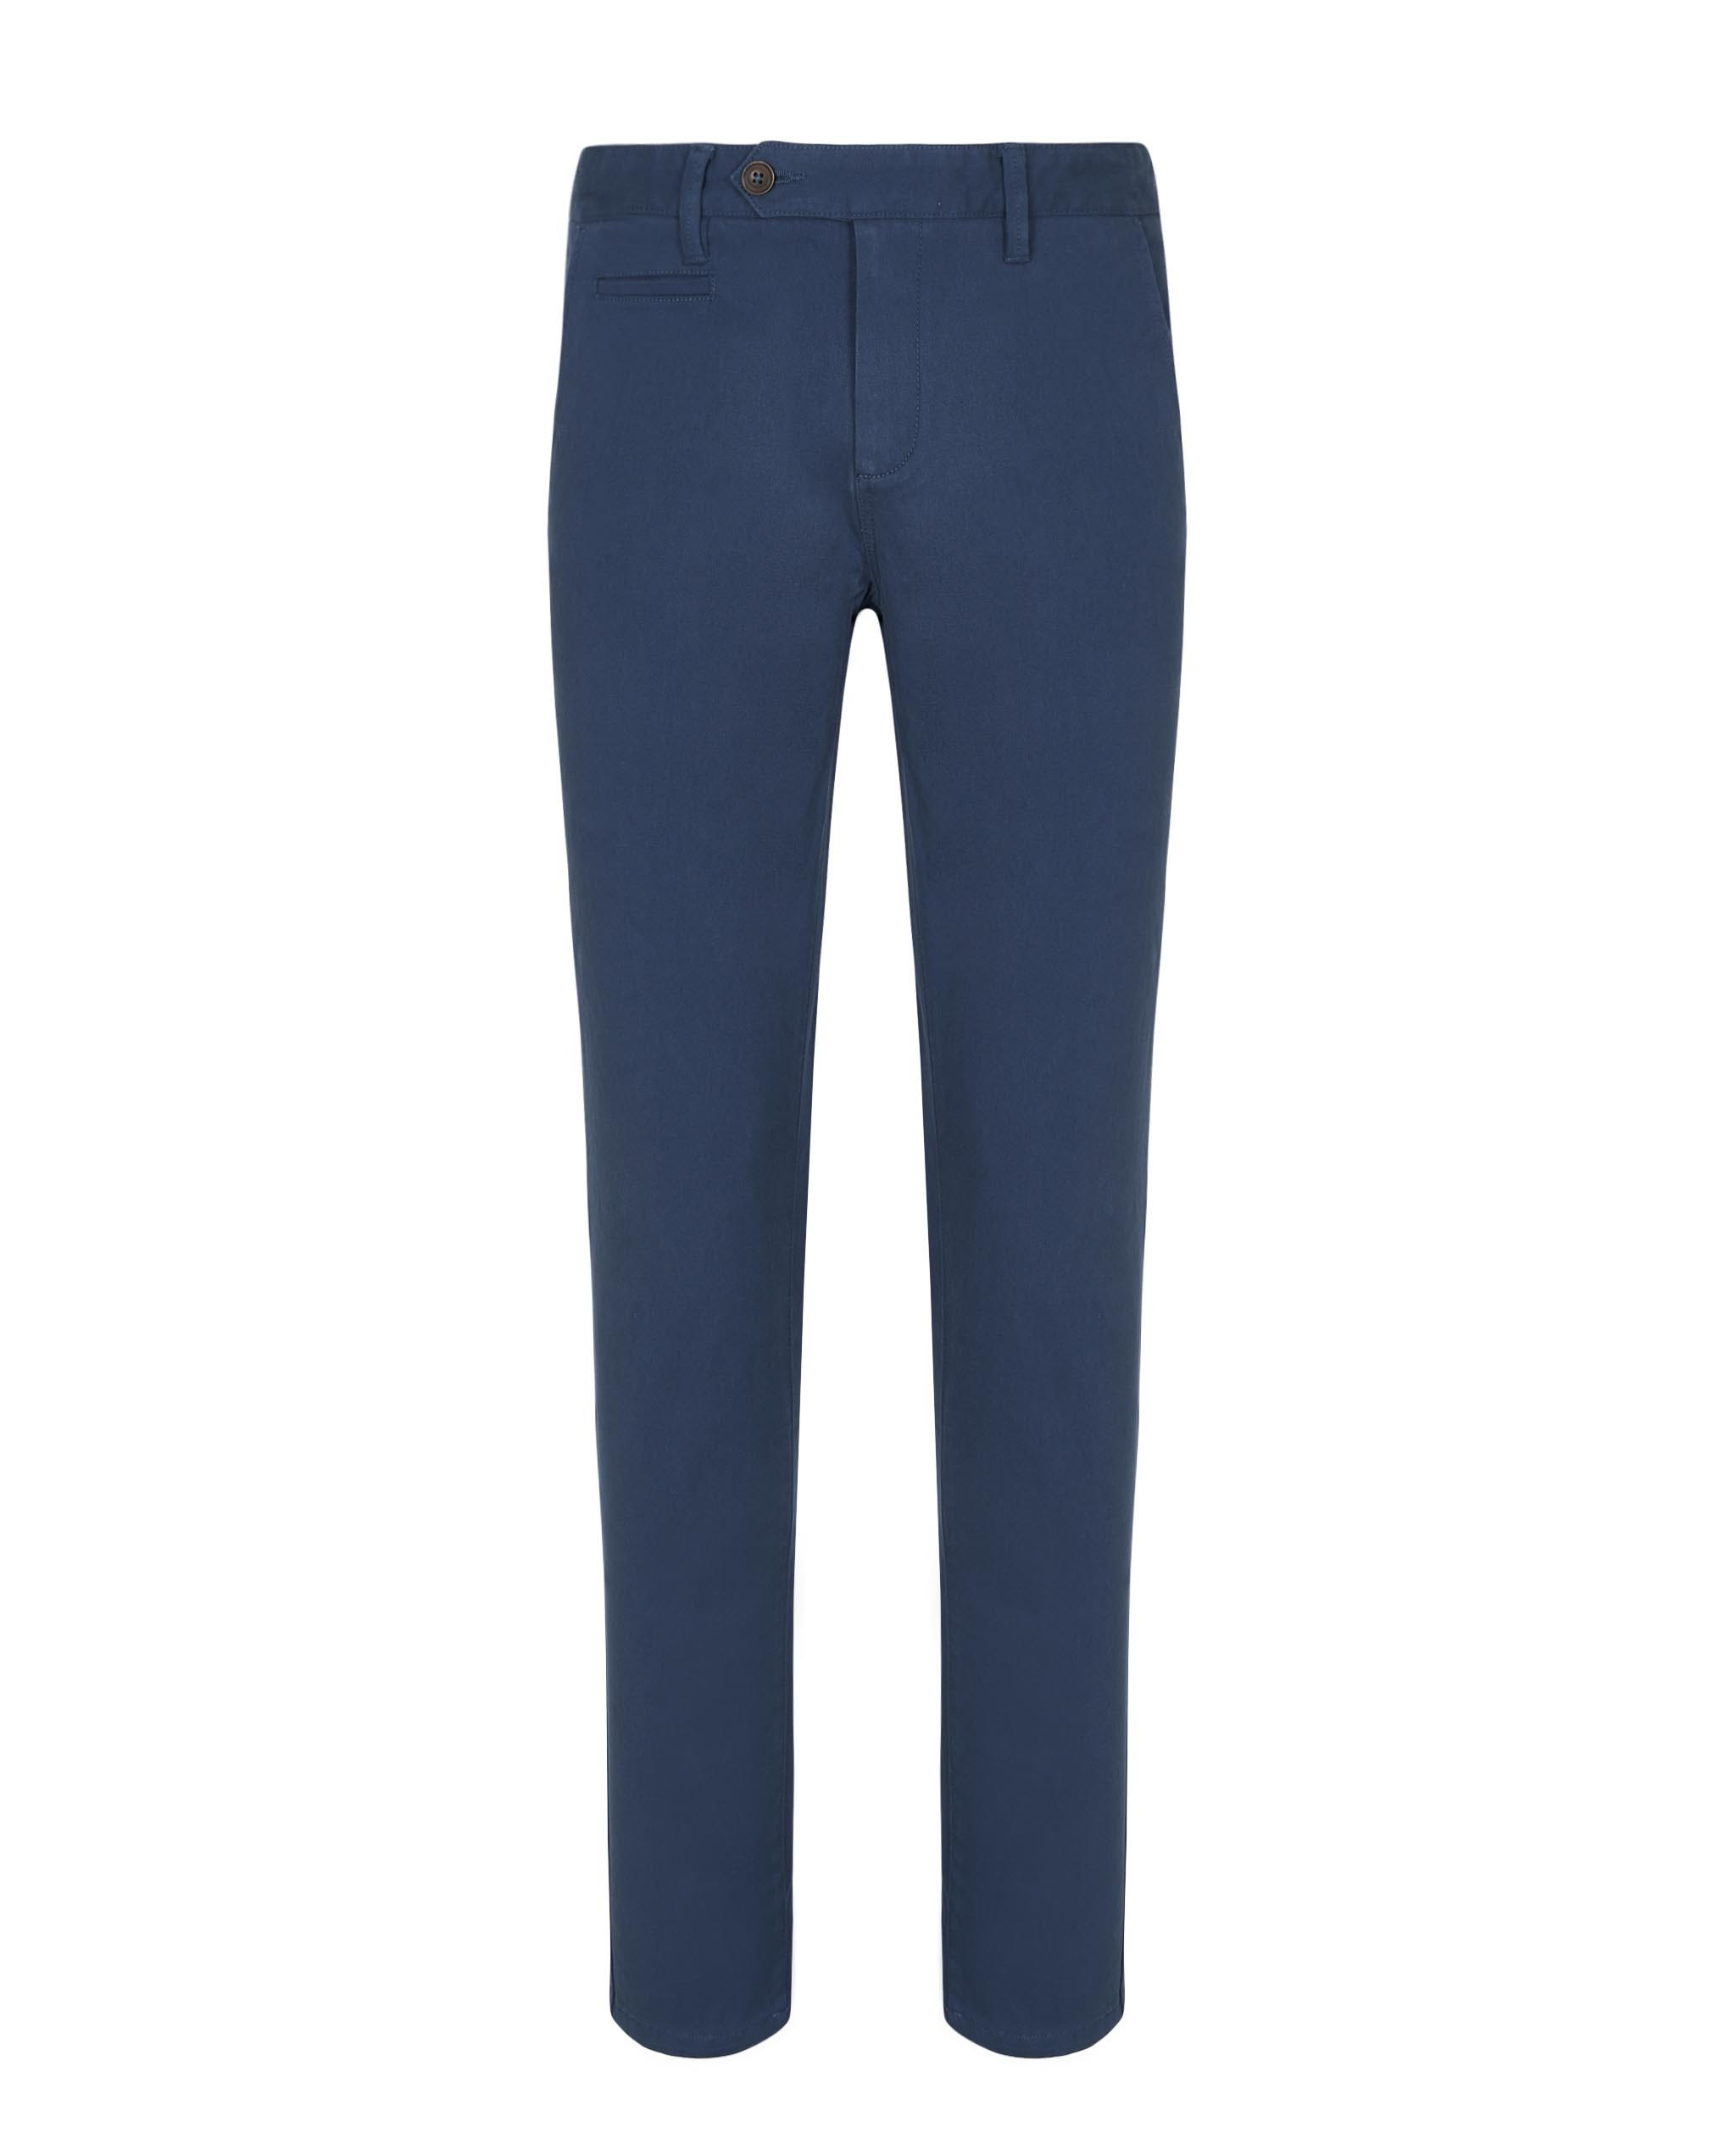 CHINOS IN TWILL BLUE